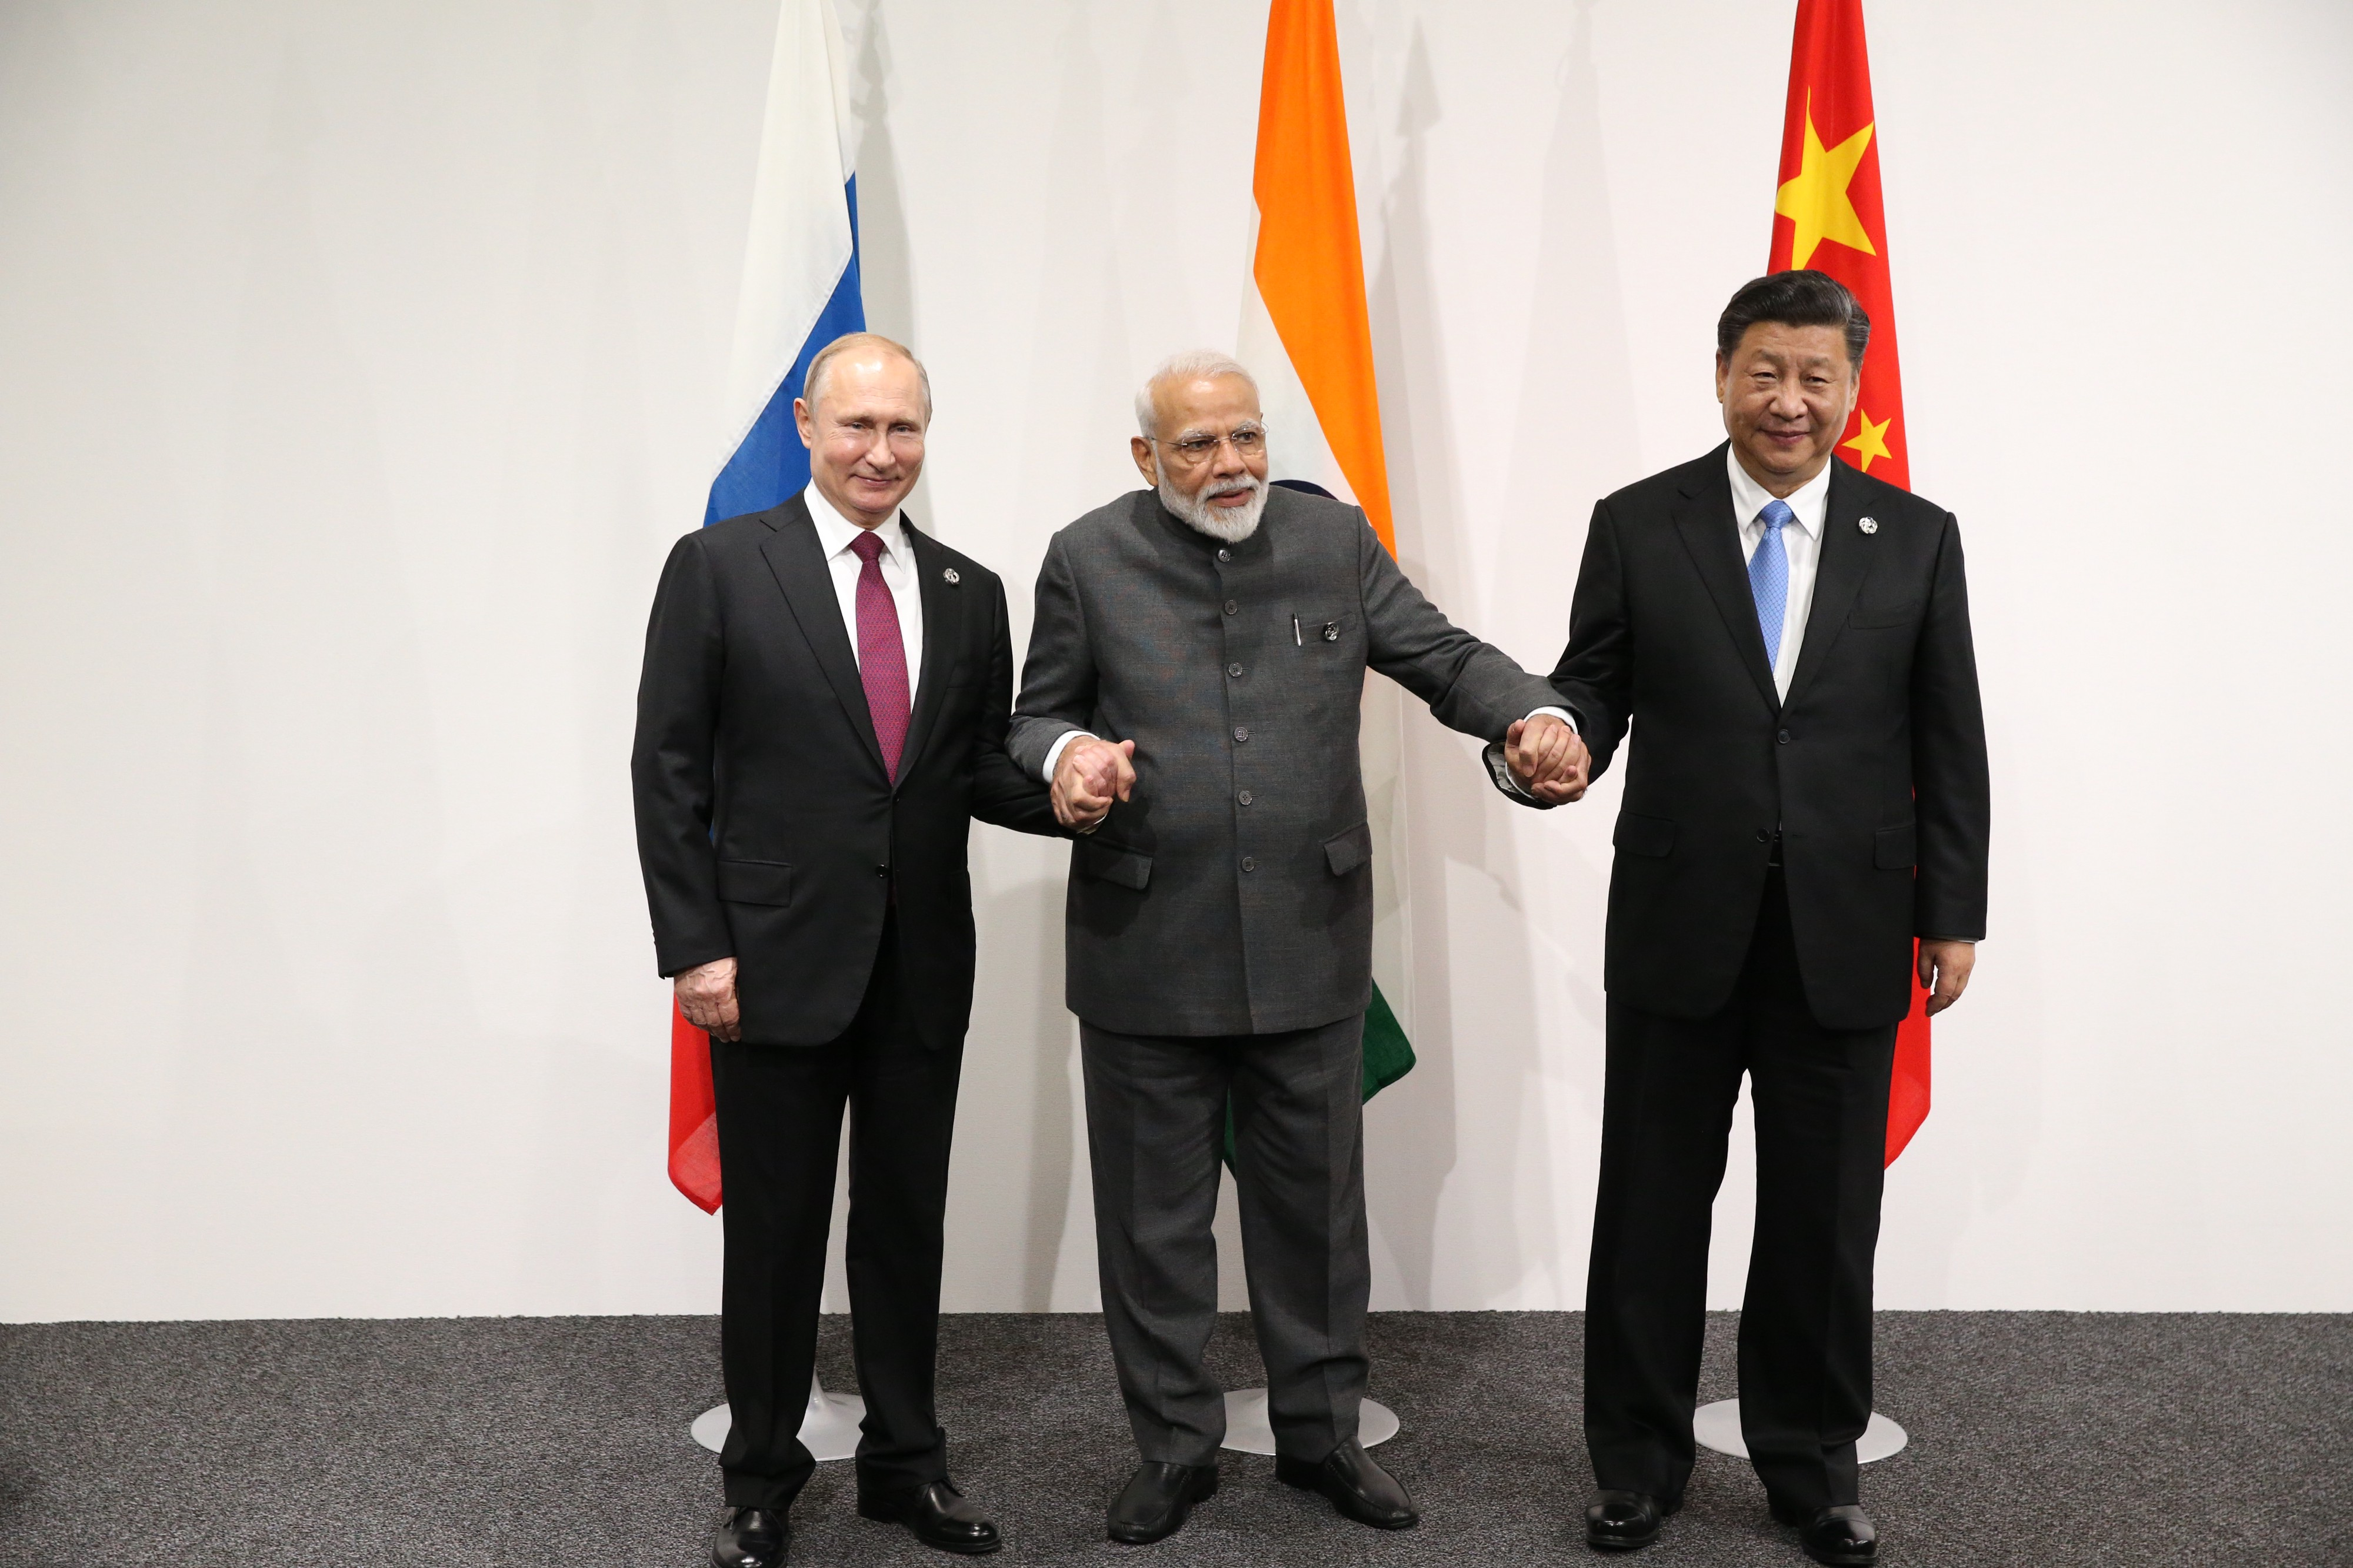 Vladimir Putin, Narendra Modi and Xi Jinping pose for a group photo prior to their trilateral meeting at the G20 Osaka Summit 2019.